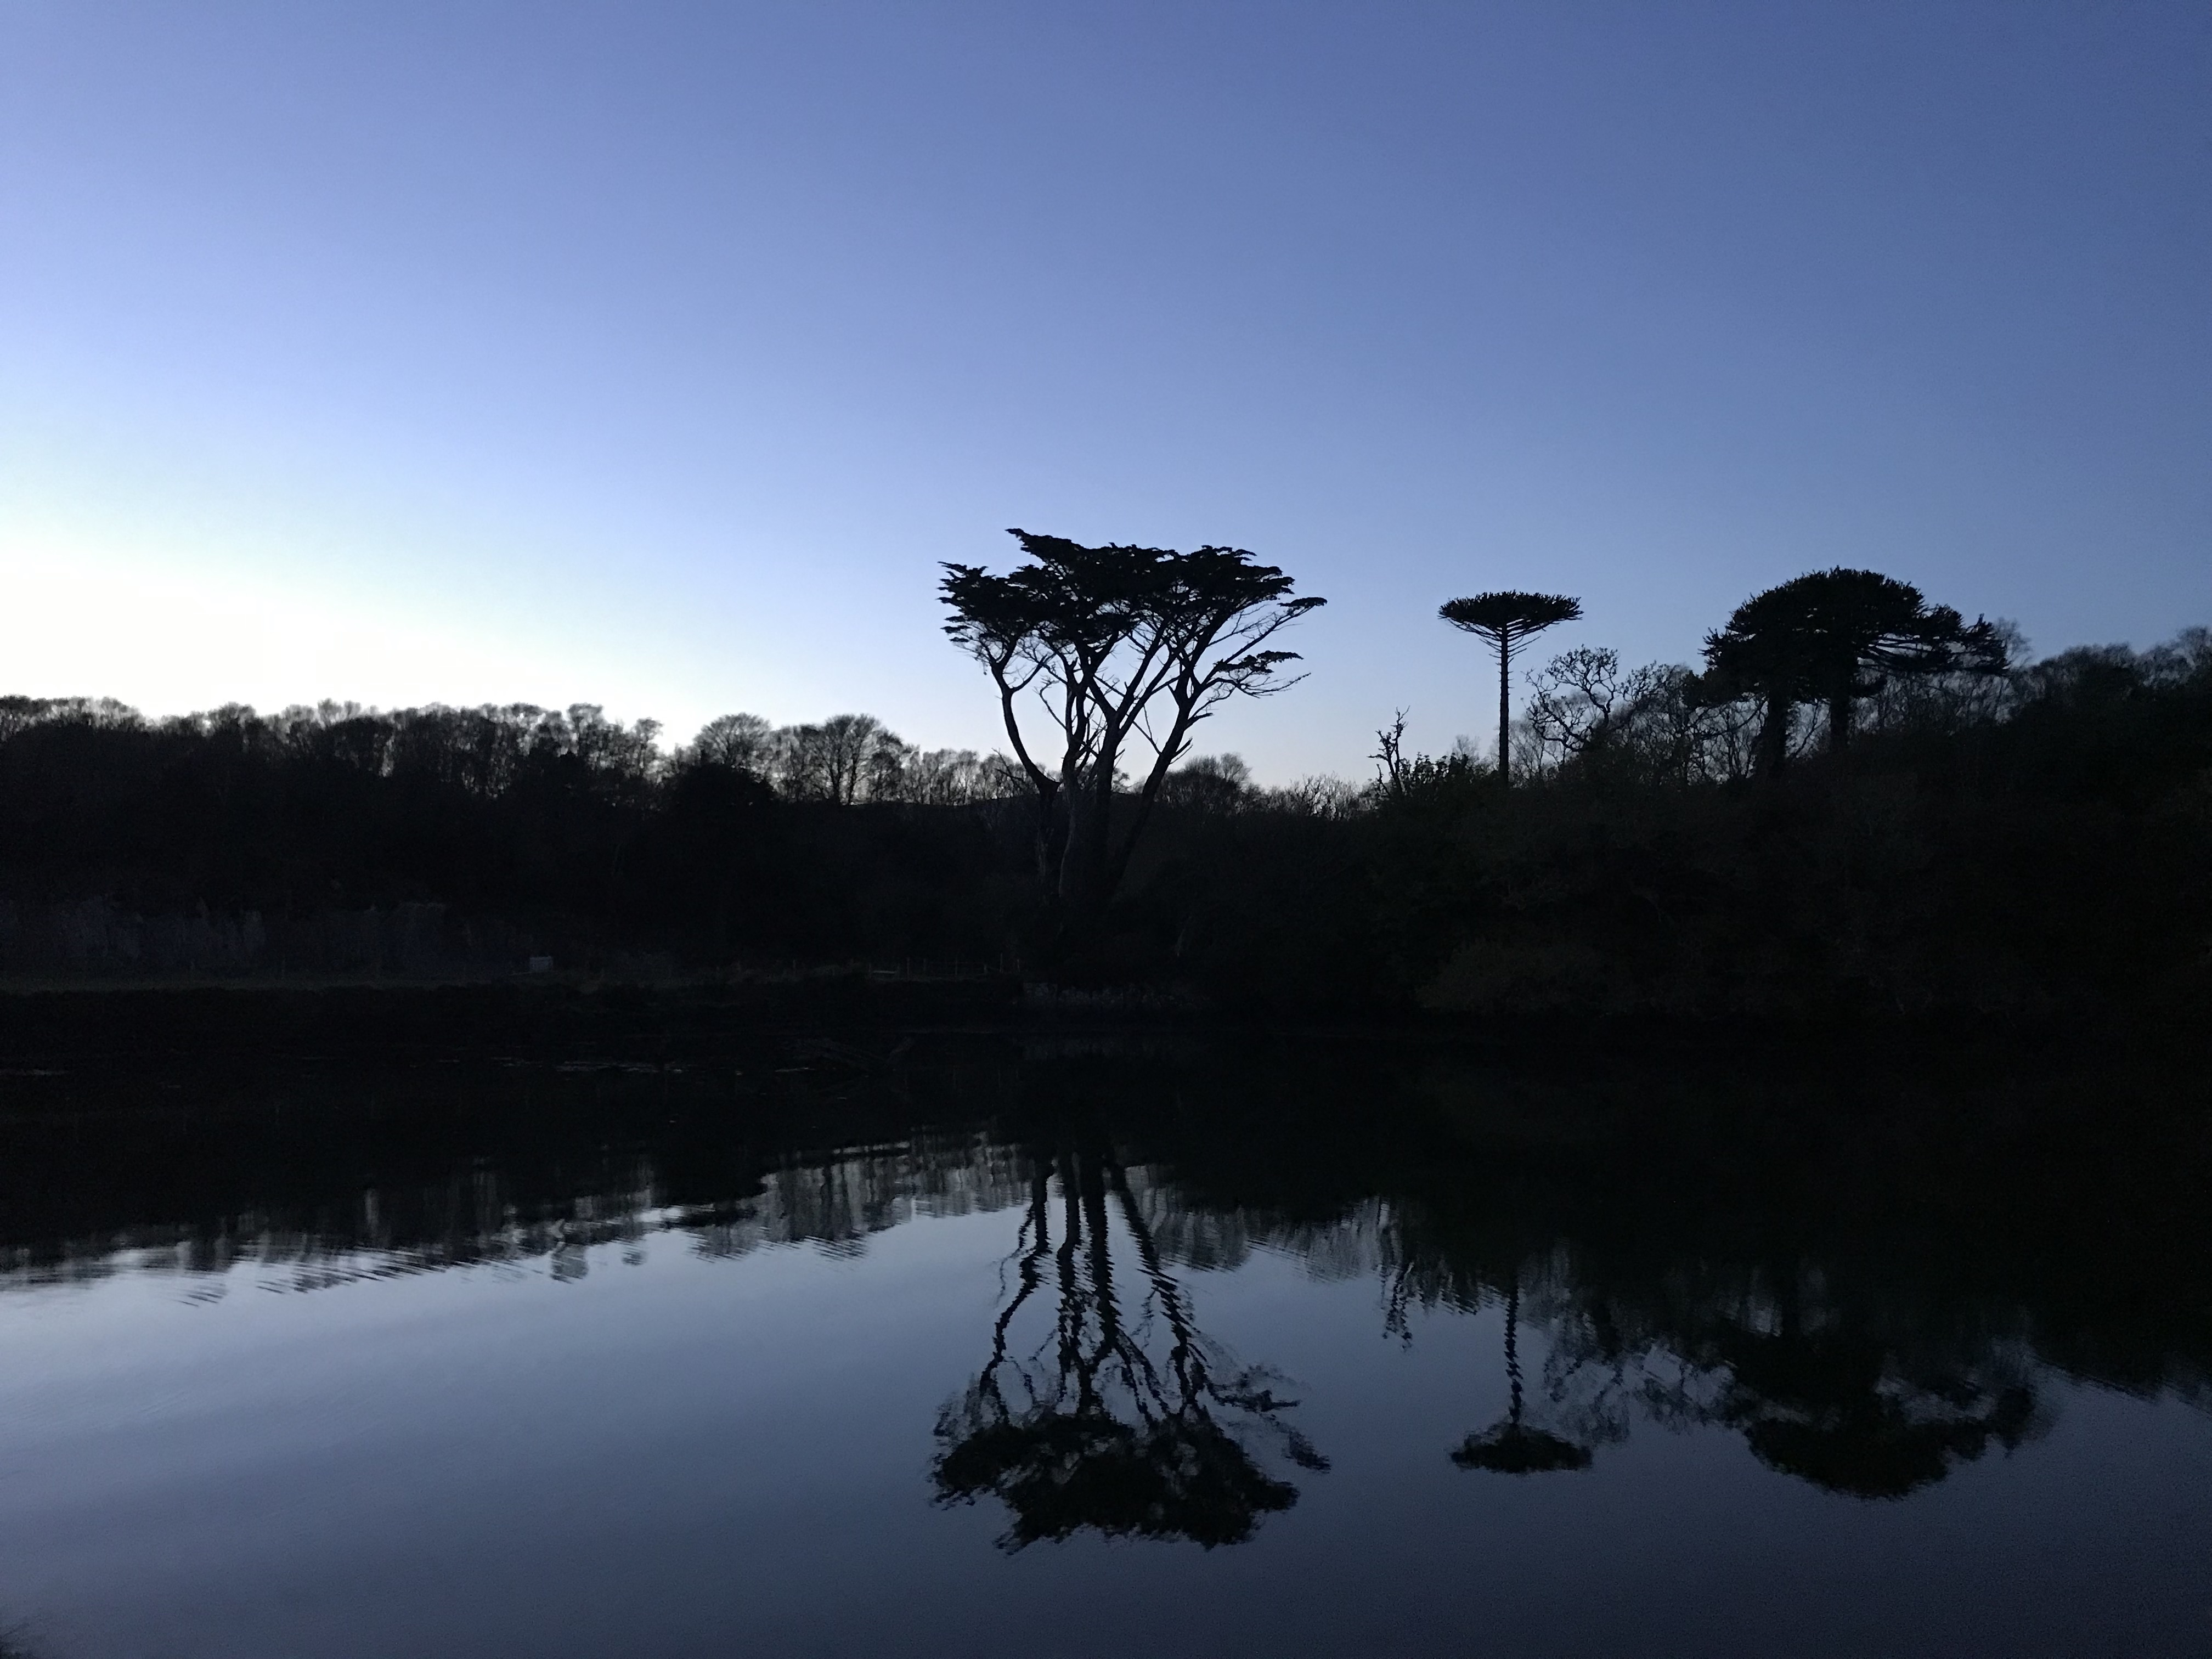 Twilight sky with a reflection of big trees on a still pond of water